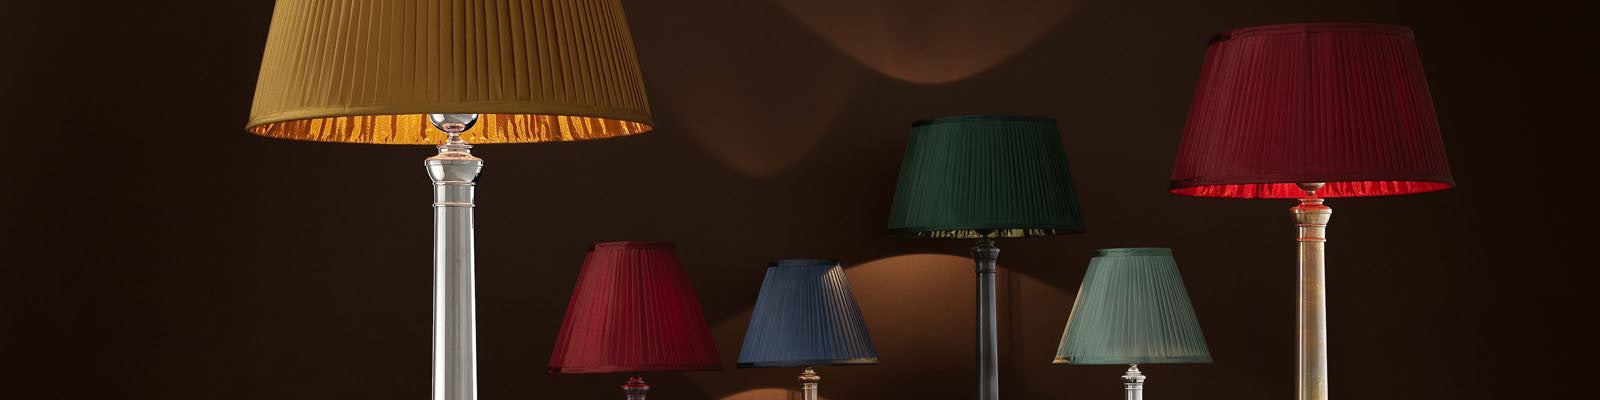 Lamp Shades | Eichholtz Lighting | OROA - Modern & Luxury Furniture Online